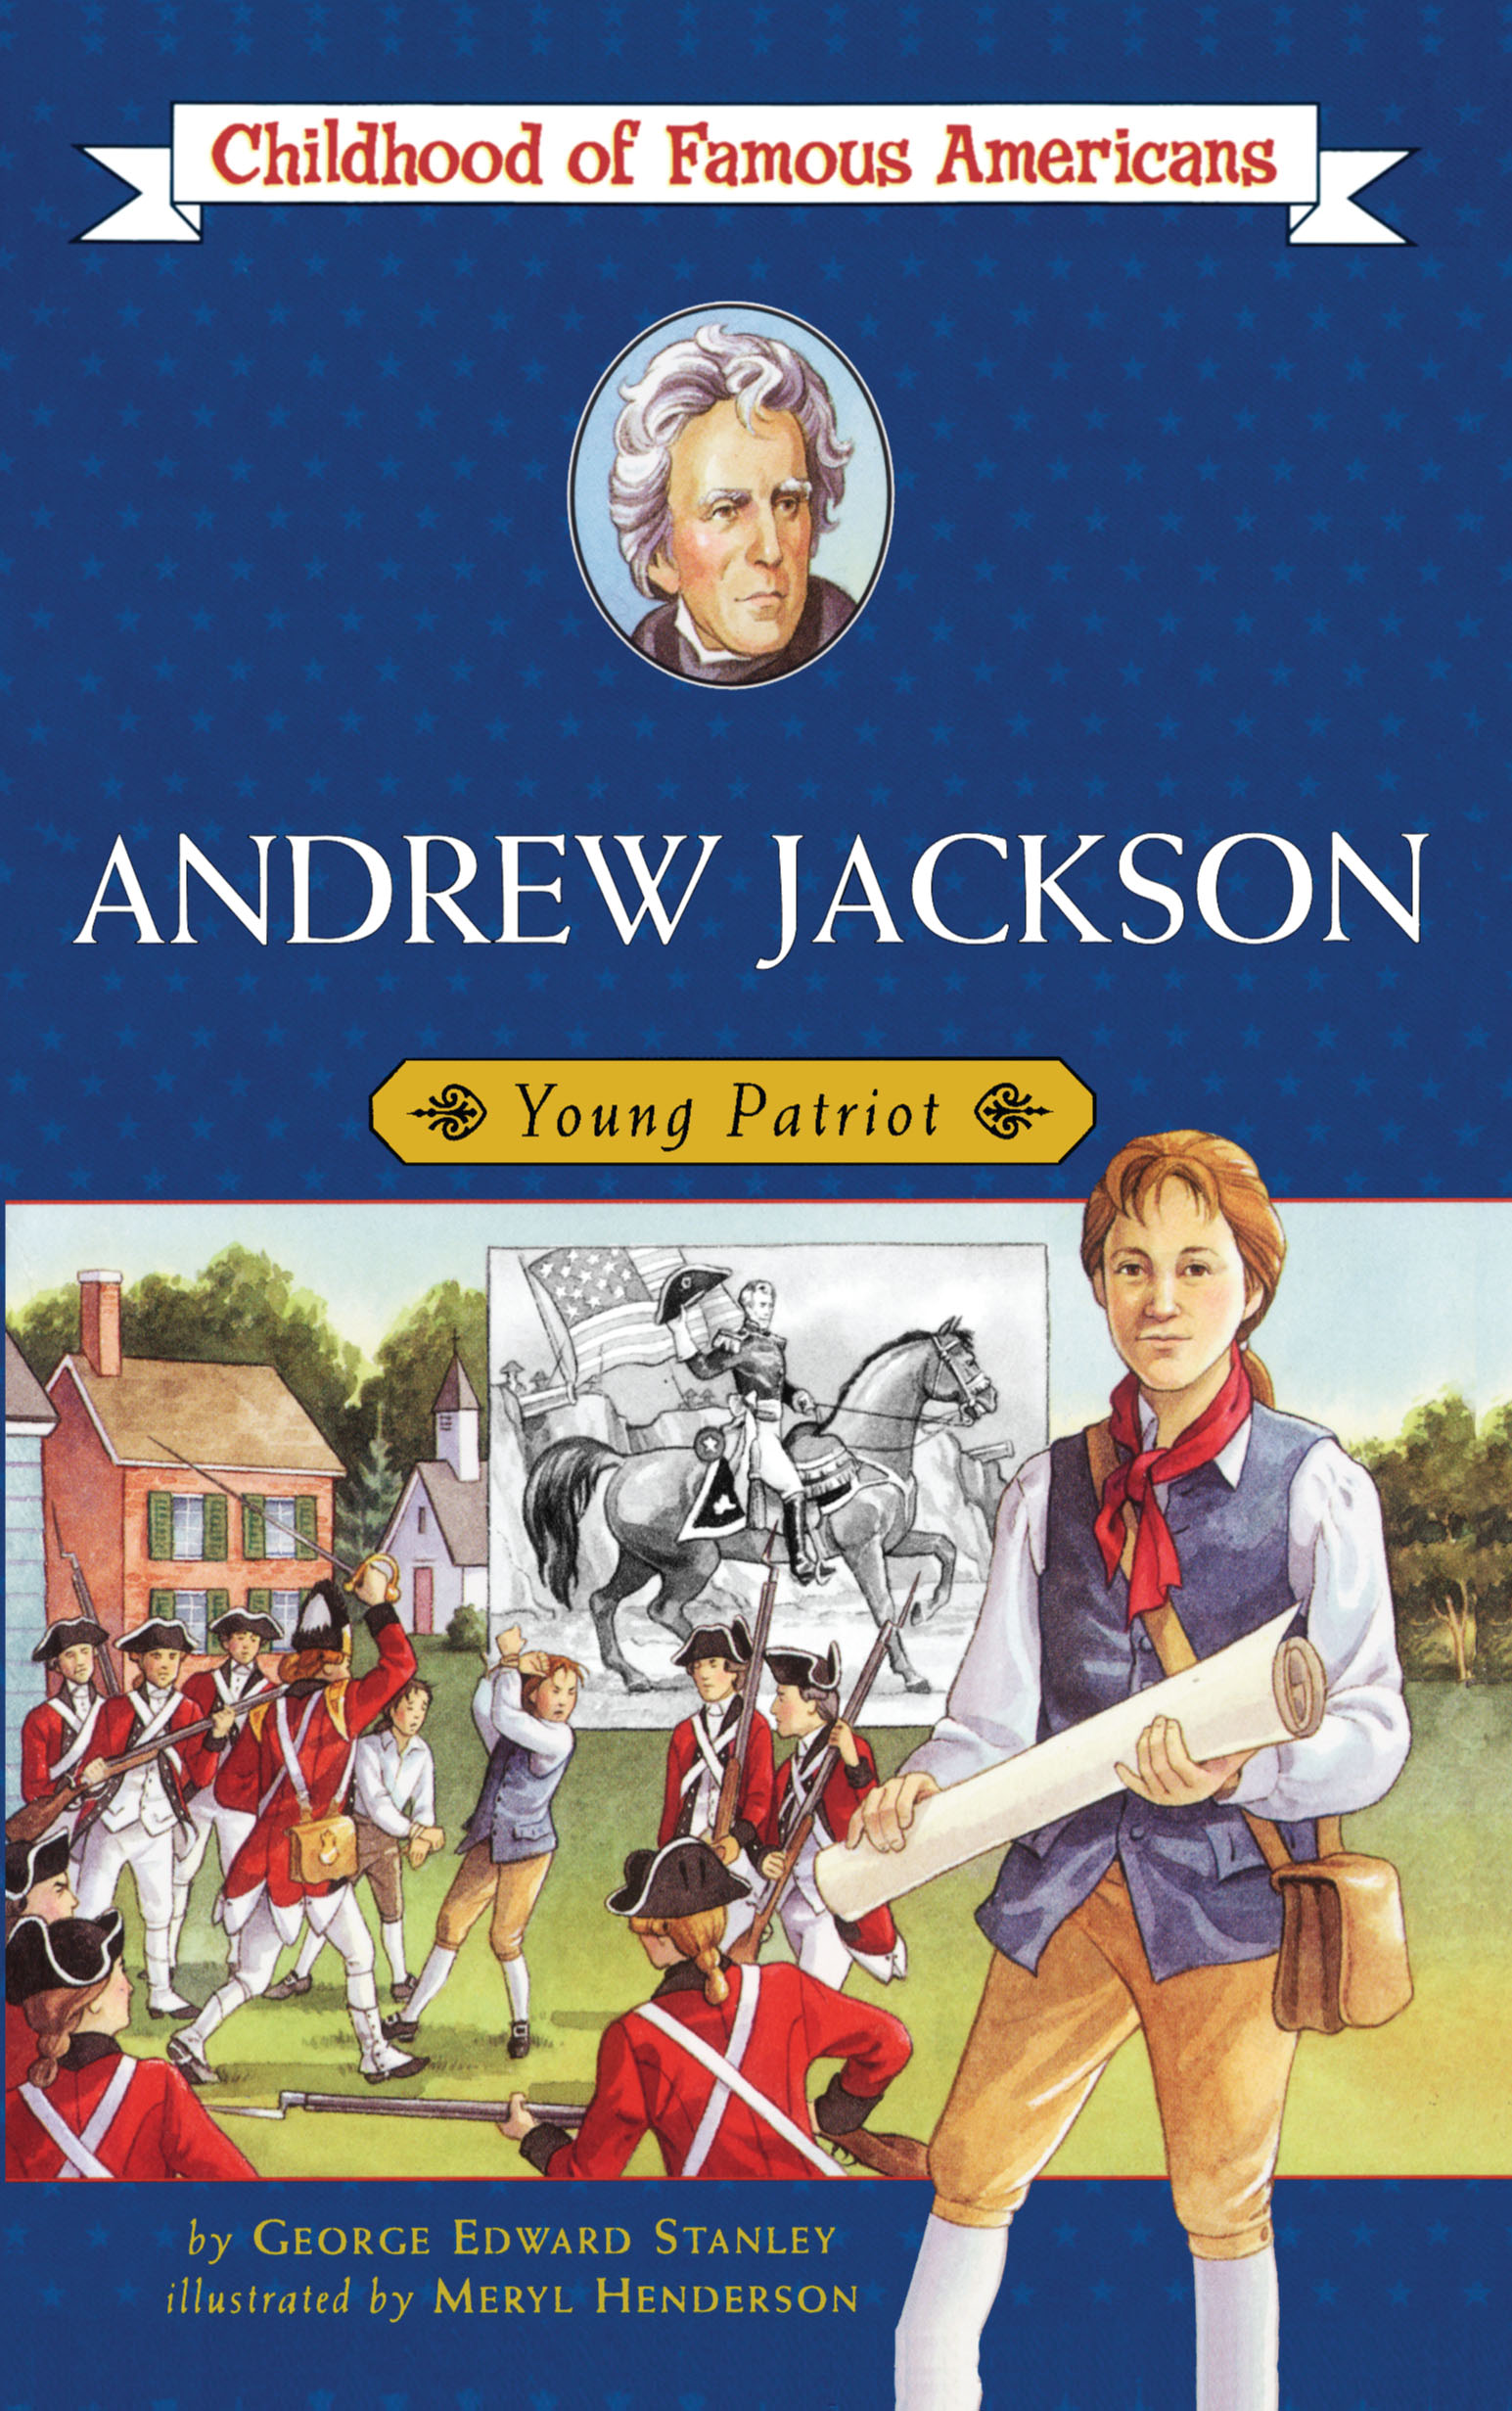 andrew jackson read and discover photo illustrated biographies.&quot